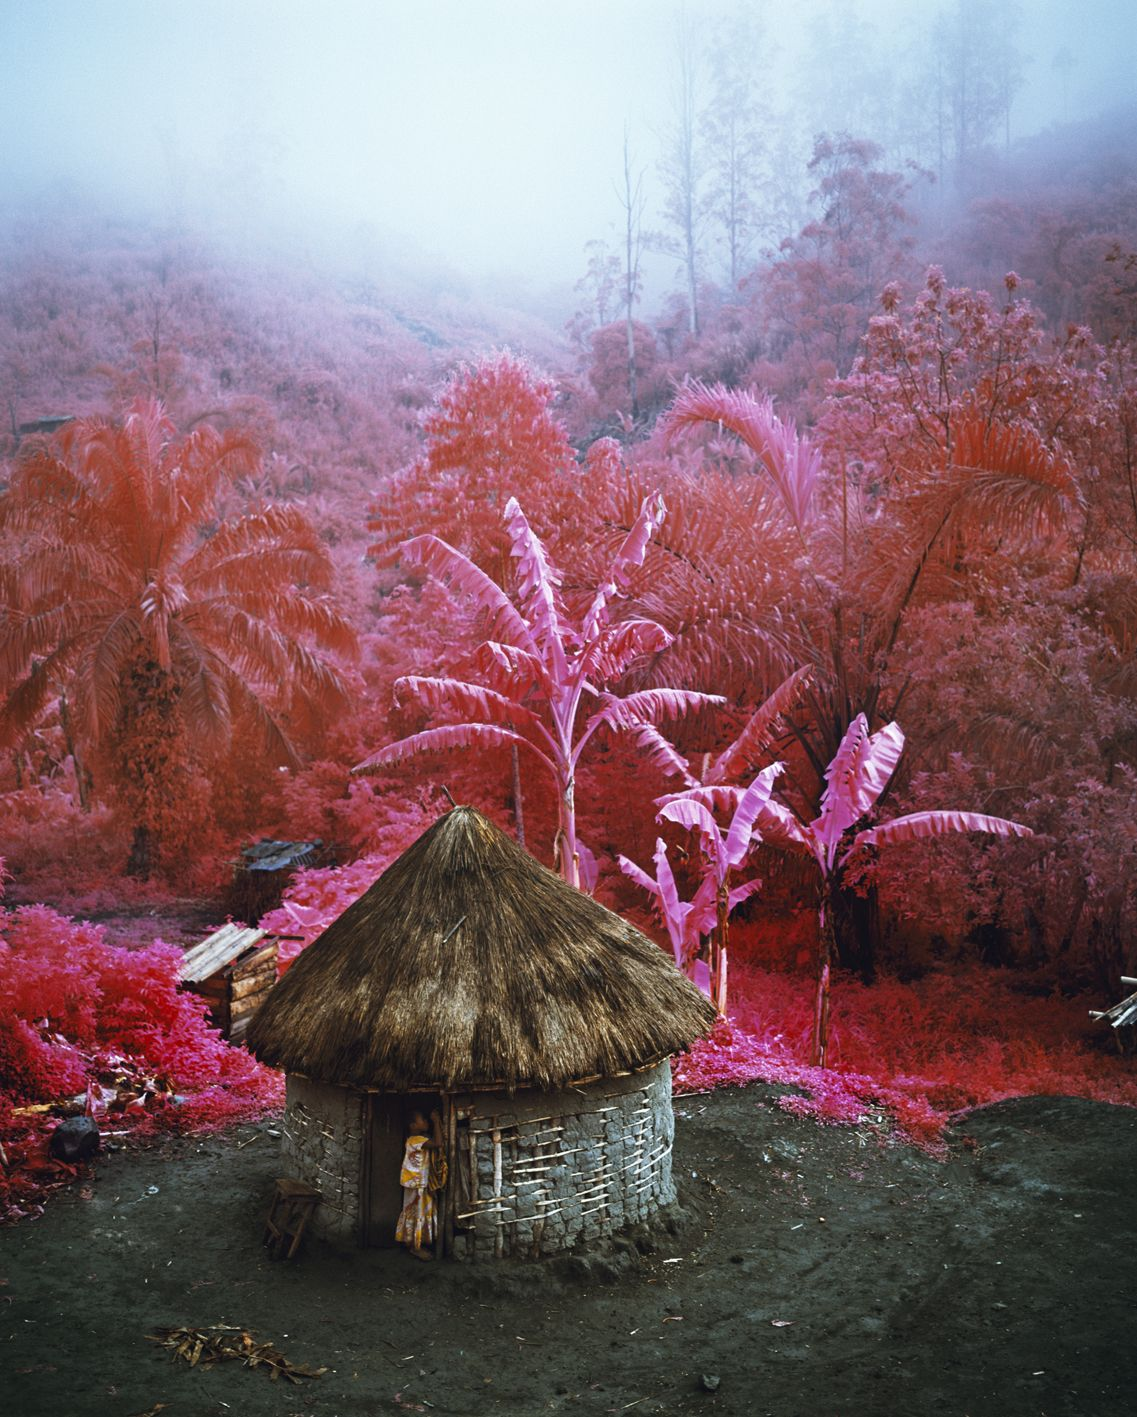 Kodak S Retired Infrared Film Creates A Hot Pink Congo Richard Mosse Infrared Photography Photography